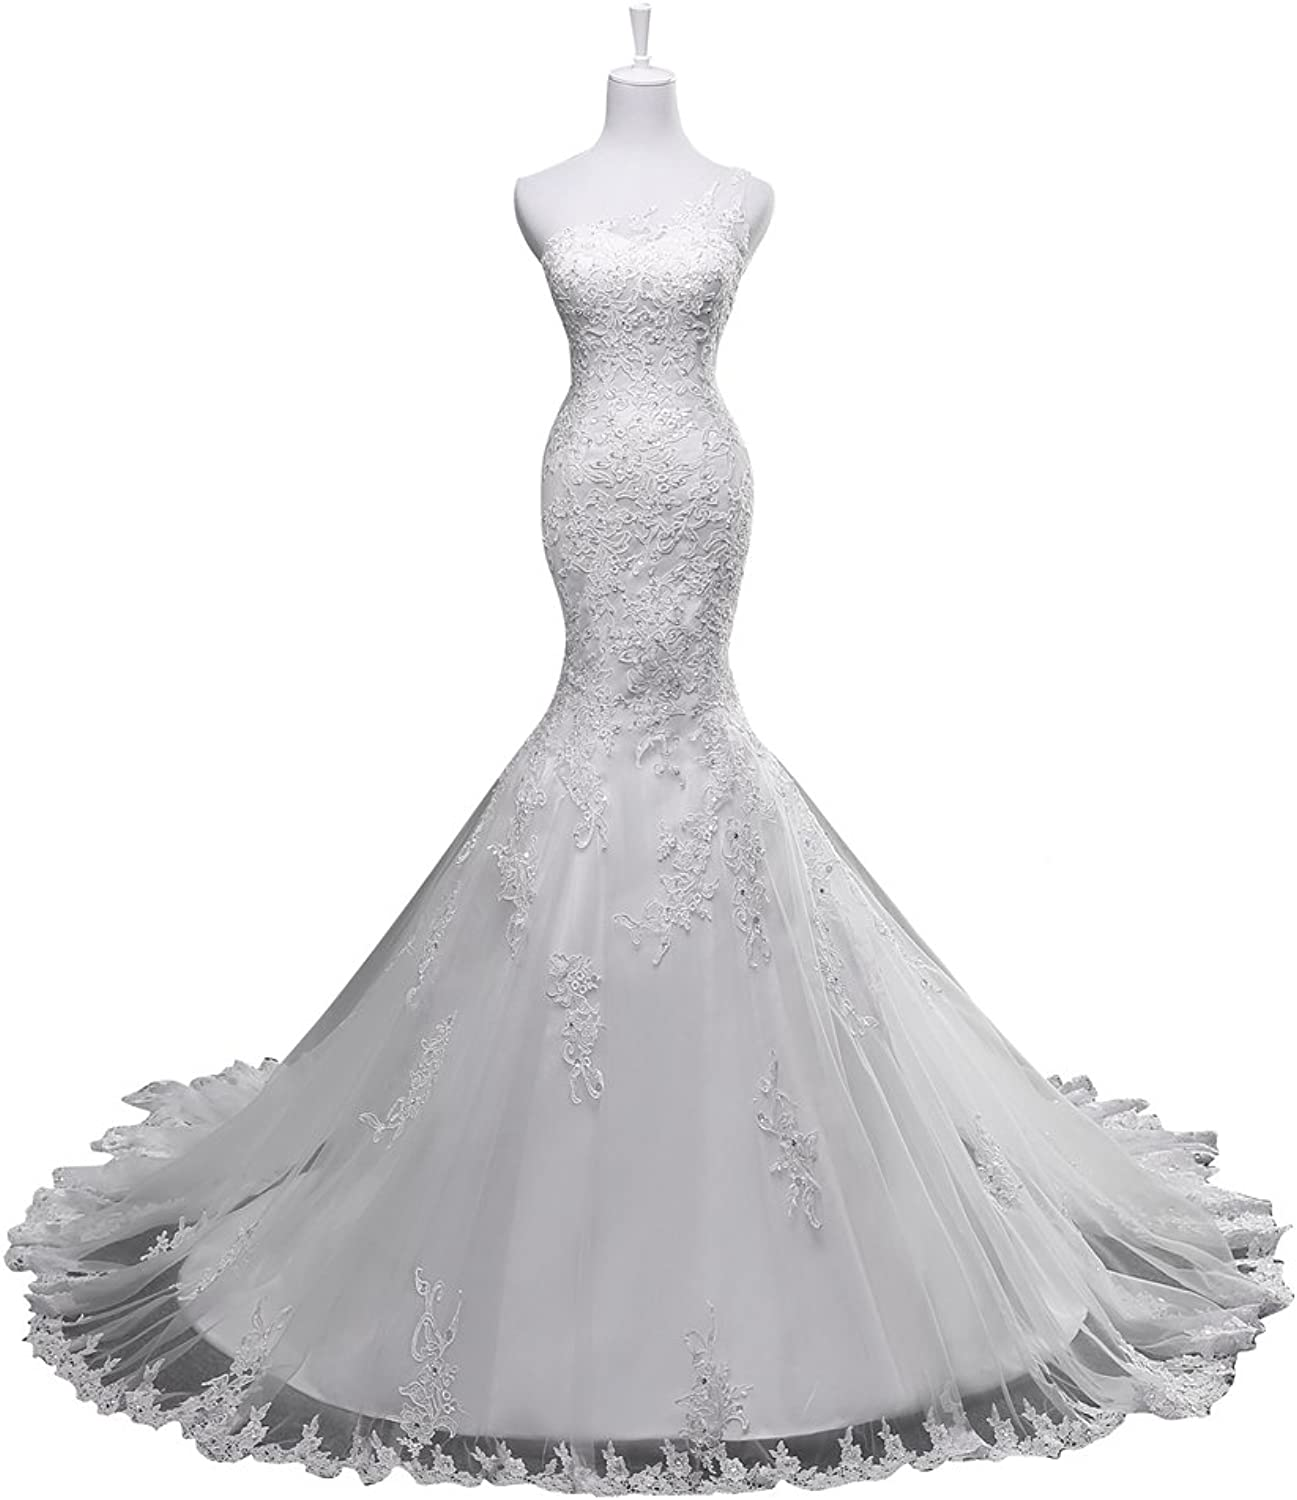 HUICHENGYAO Women's One Shoulder Mermaid Lace Wedding Dress with Beaded